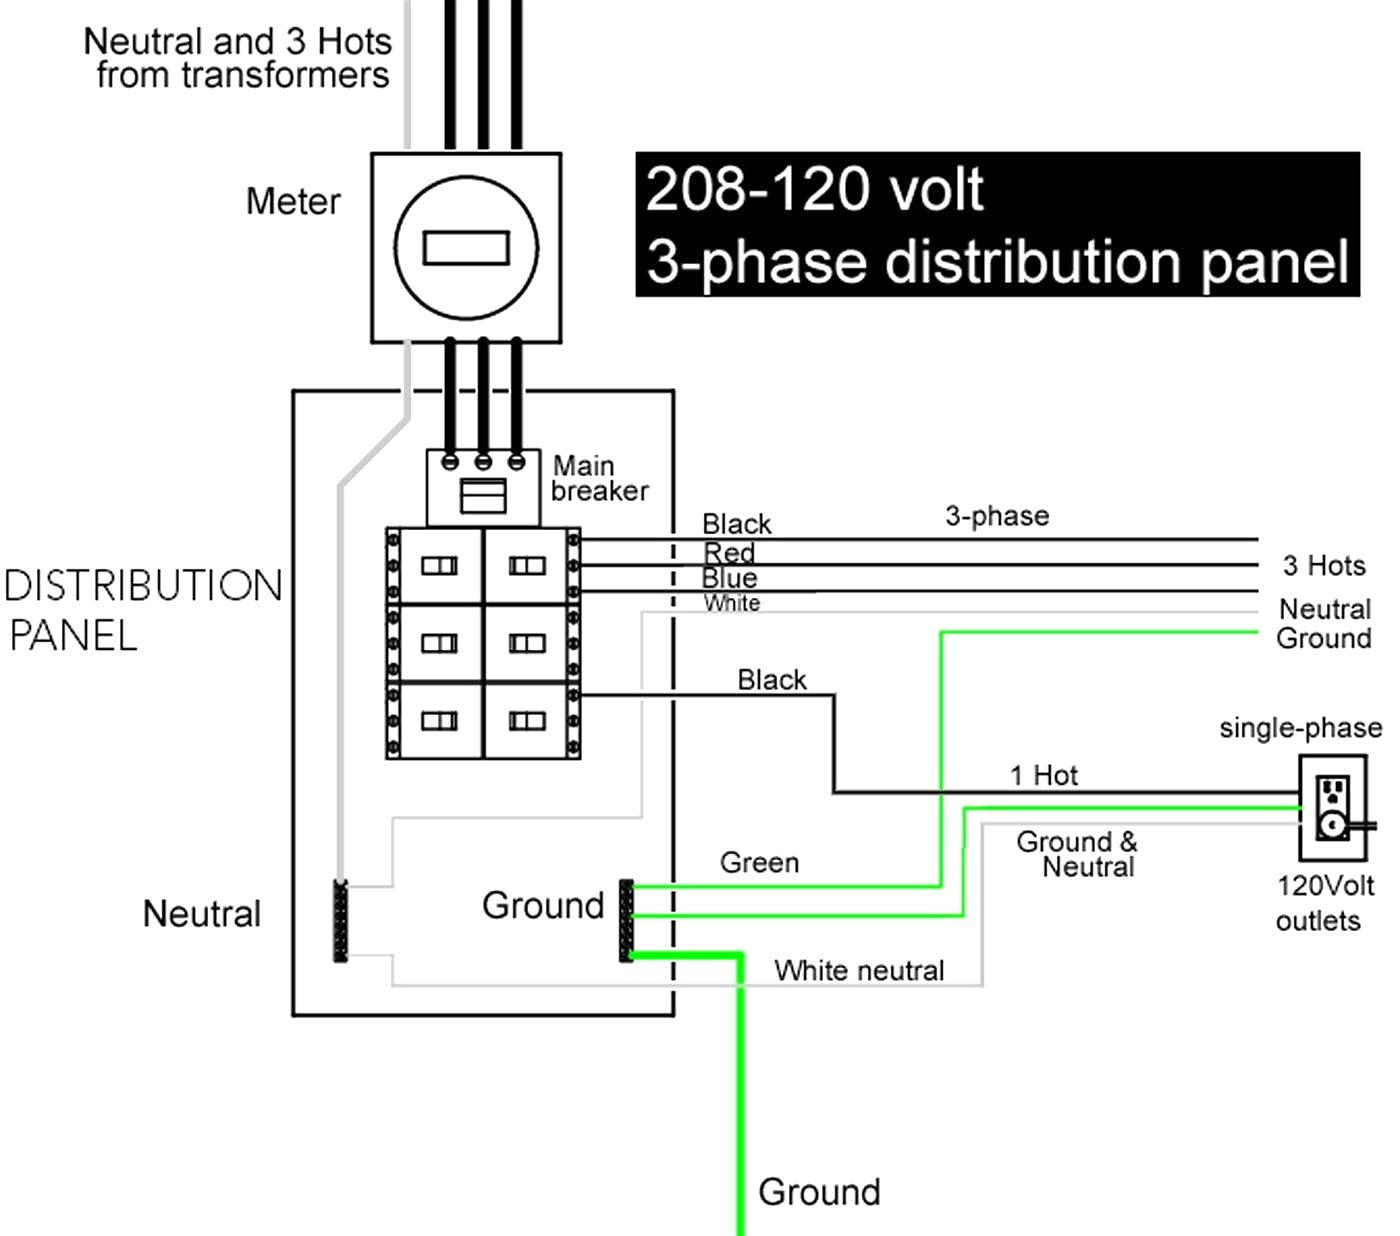 120V Wiring Diagram from wholefoodsonabudget.com